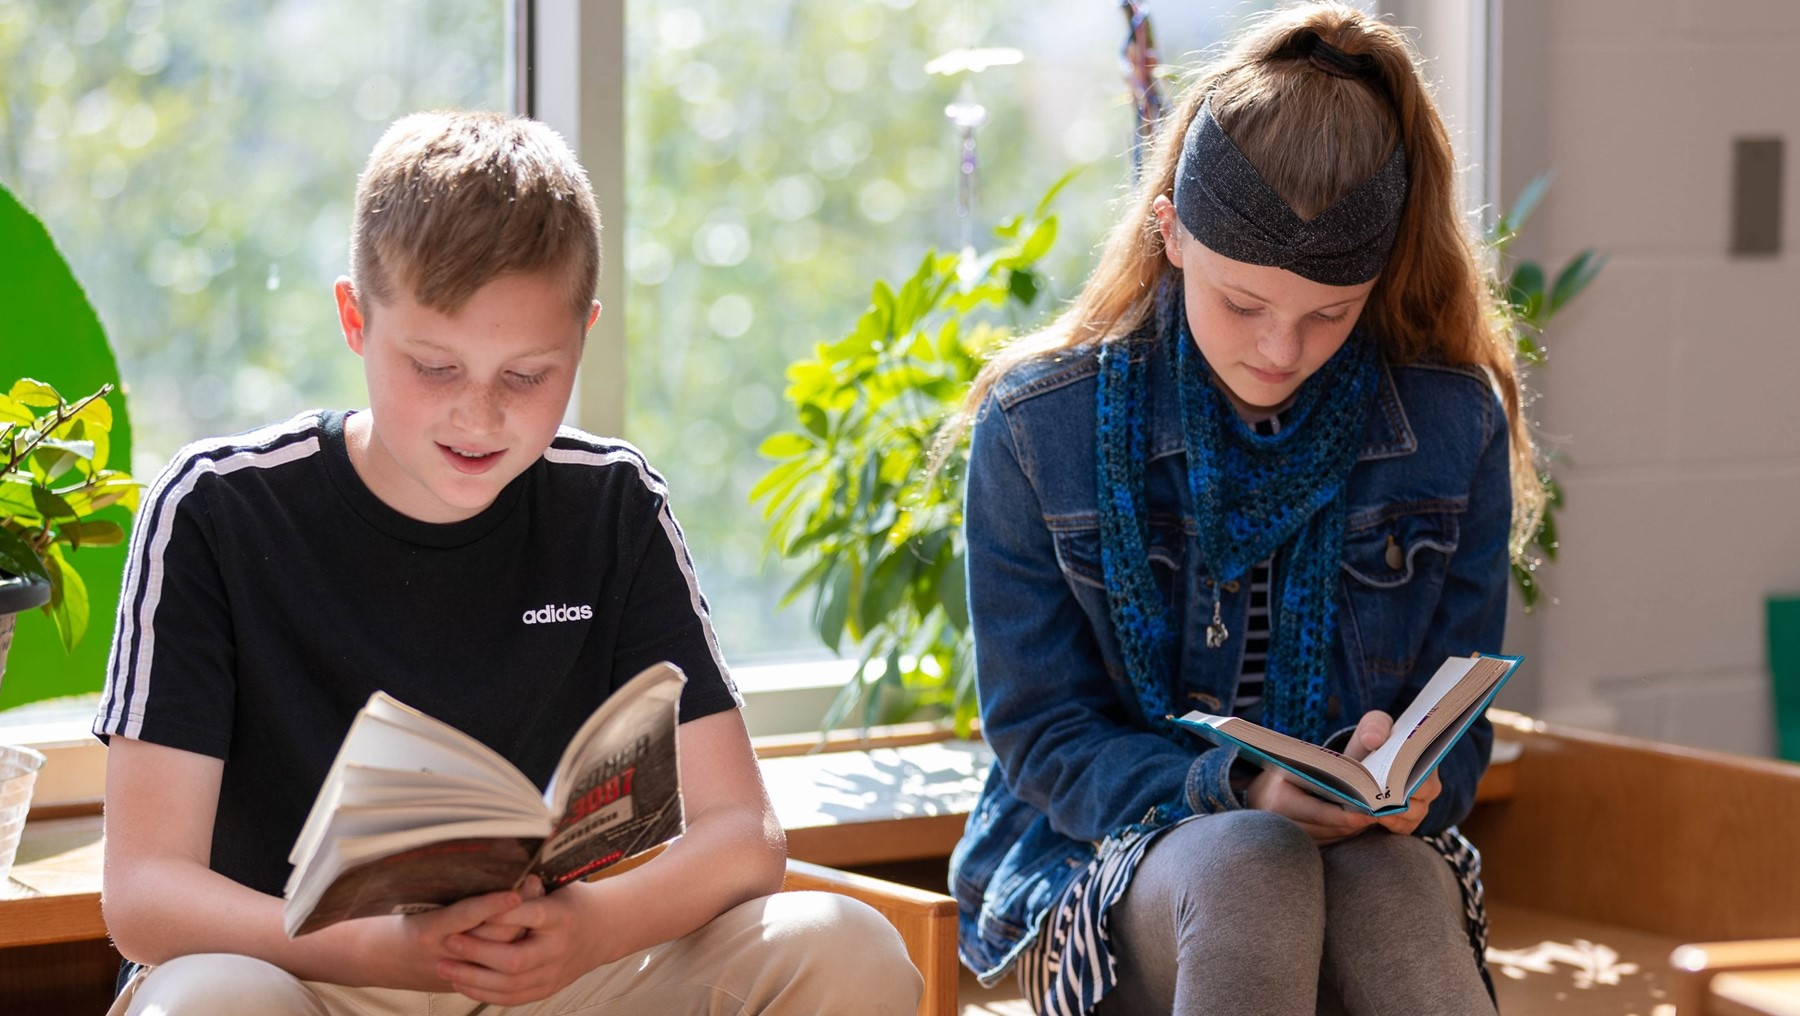 We provide Library access to all students in preschool through high school!